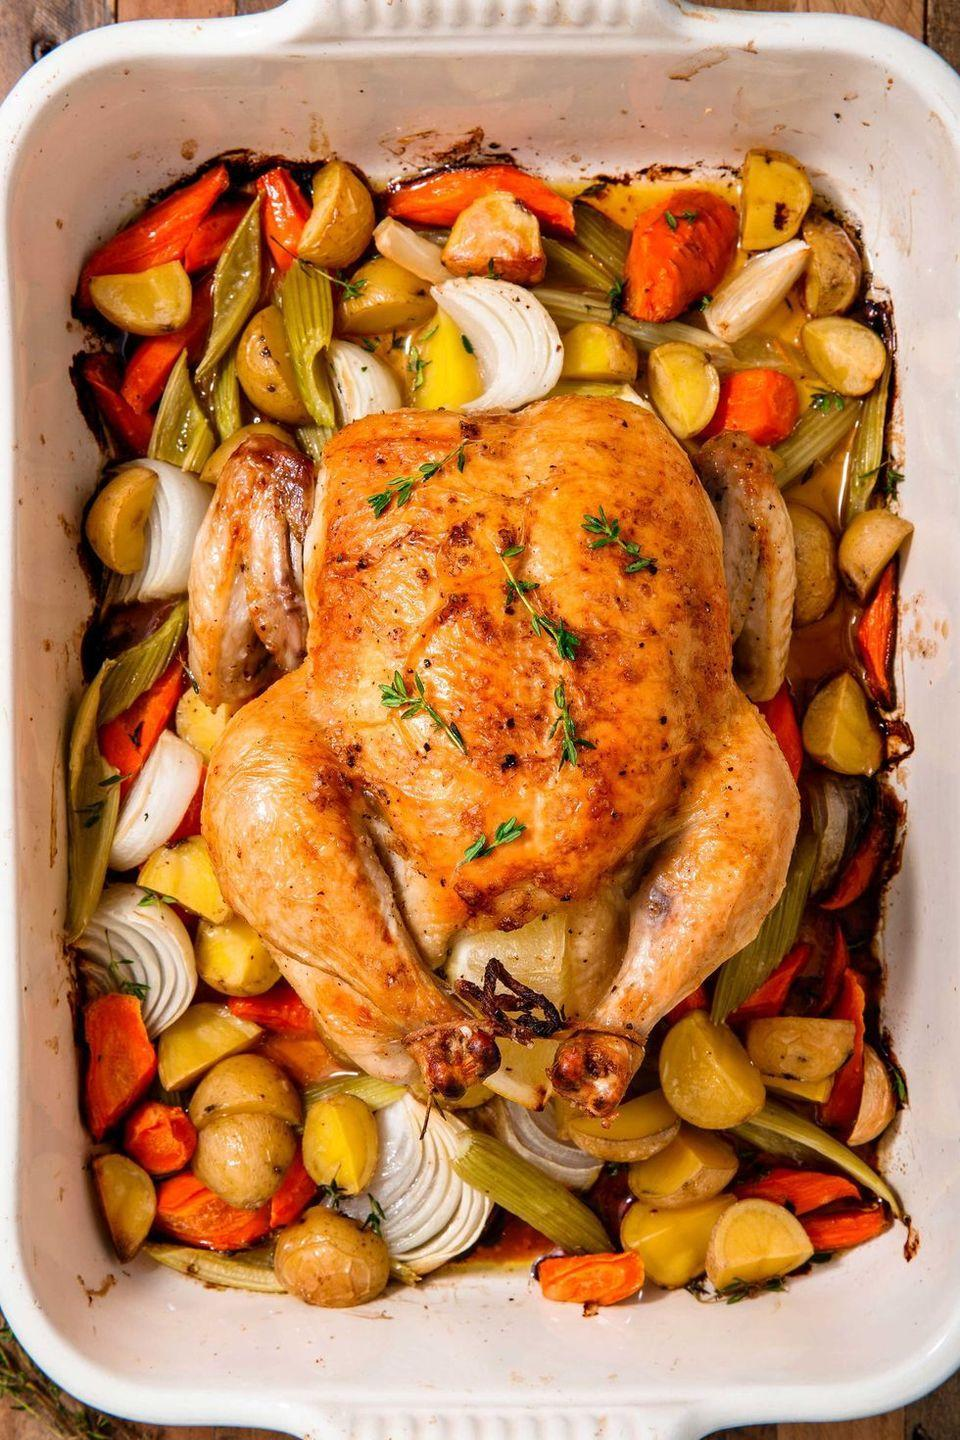 """<p>Intimidated by a whole chicken? Don't be! It's surprisingly easy to make, and there's nothing better than roast chicken leftovers. Great on salads and in sandwiches.</p><p>Get the <a href=""""https://www.delish.com/uk/cooking/recipes/a28926109/classic-roast-chicken-recipe/"""" rel=""""nofollow noopener"""" target=""""_blank"""" data-ylk=""""slk:Classic Roast Chicken"""" class=""""link rapid-noclick-resp"""">Classic Roast Chicken</a> recipe.</p>"""